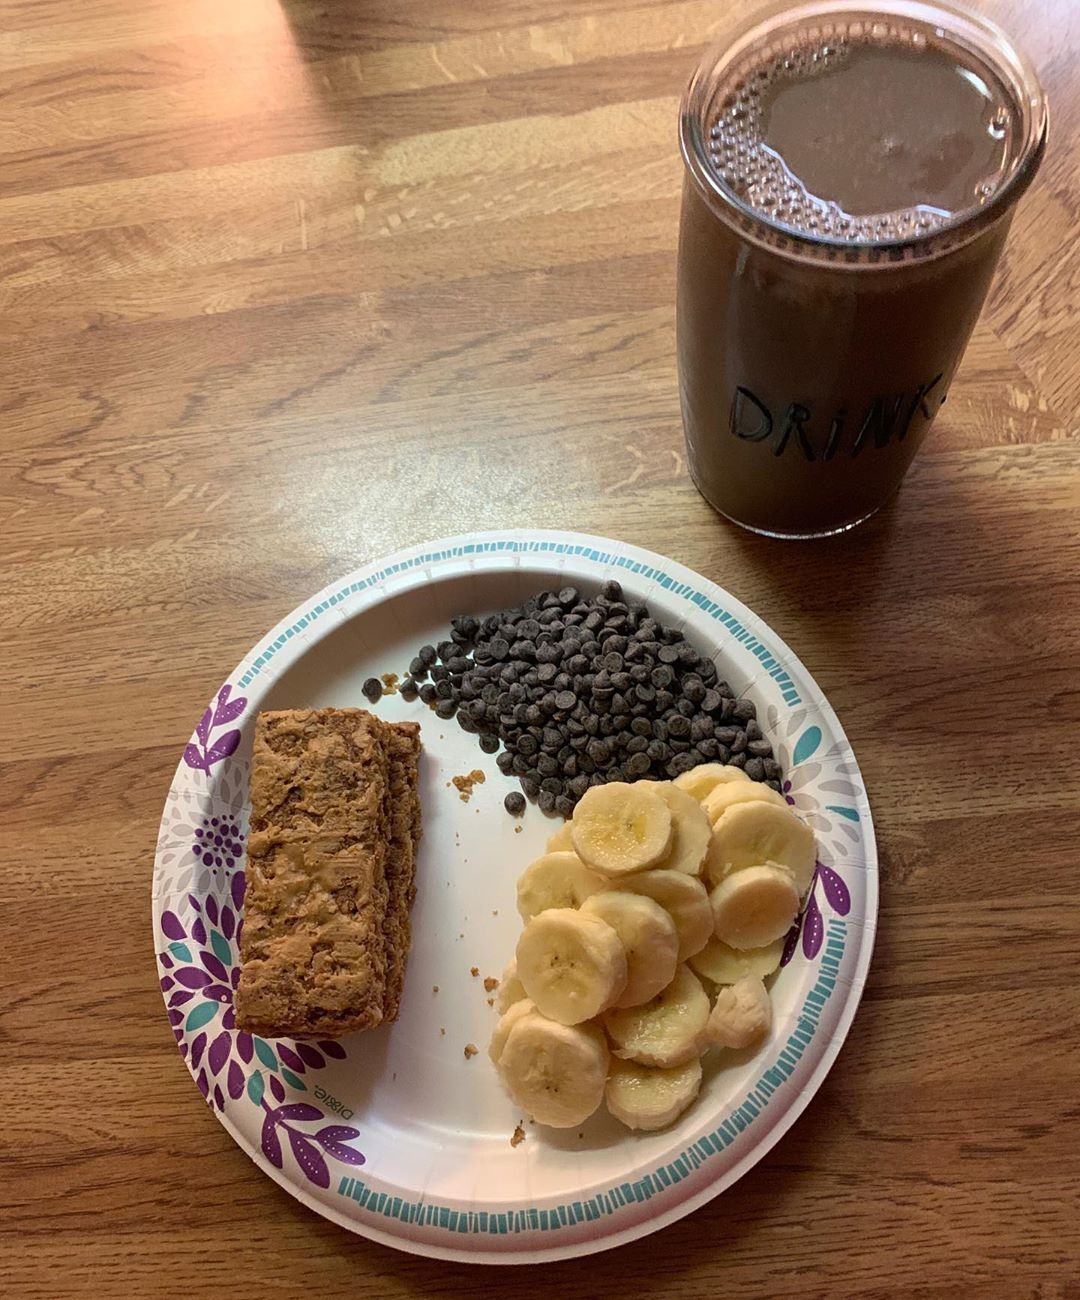 Mid morning snack... peanut butter granola bars with an organic banana, and chocolate chips. @silk dark chocolate almond milk on the side.